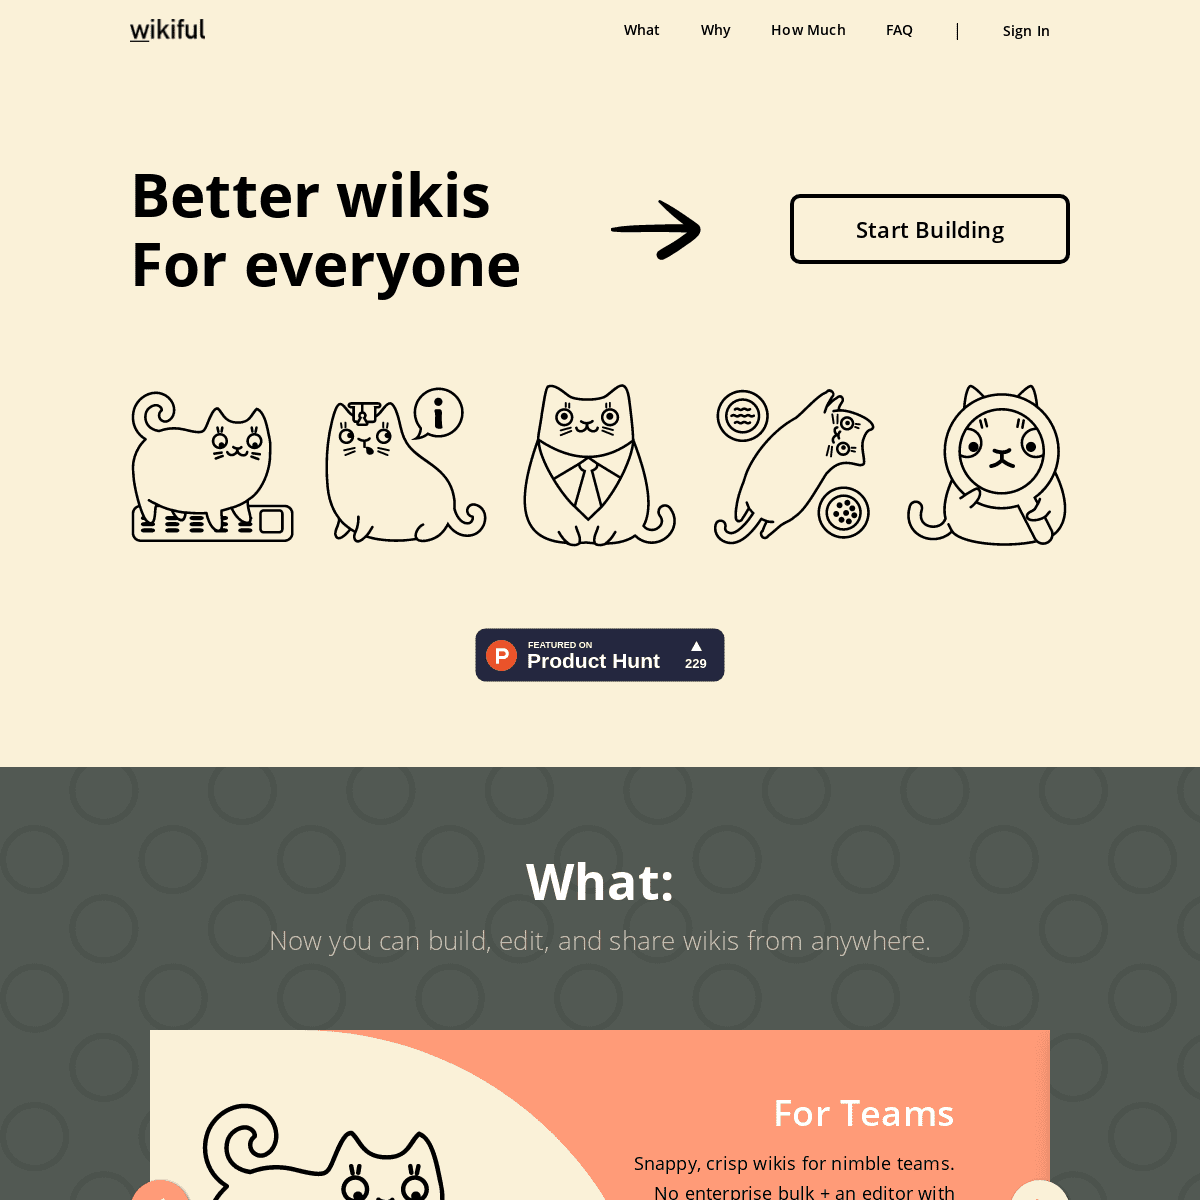 Wikiful – better wikis for everyone